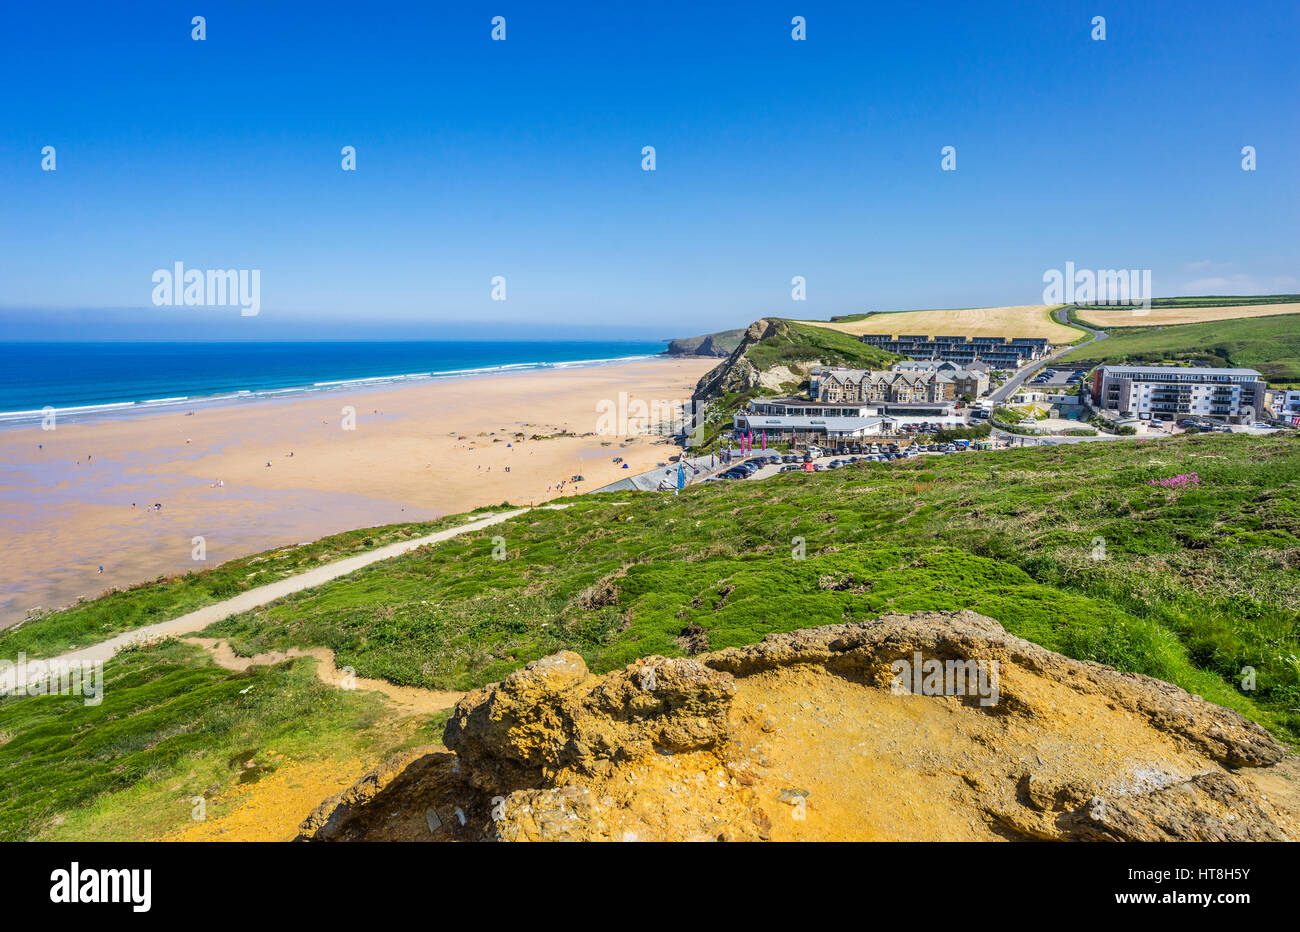 United Kingdom, Cornwall, Watergate Bay, beach and seaside resort north of Newquay - Stock Image